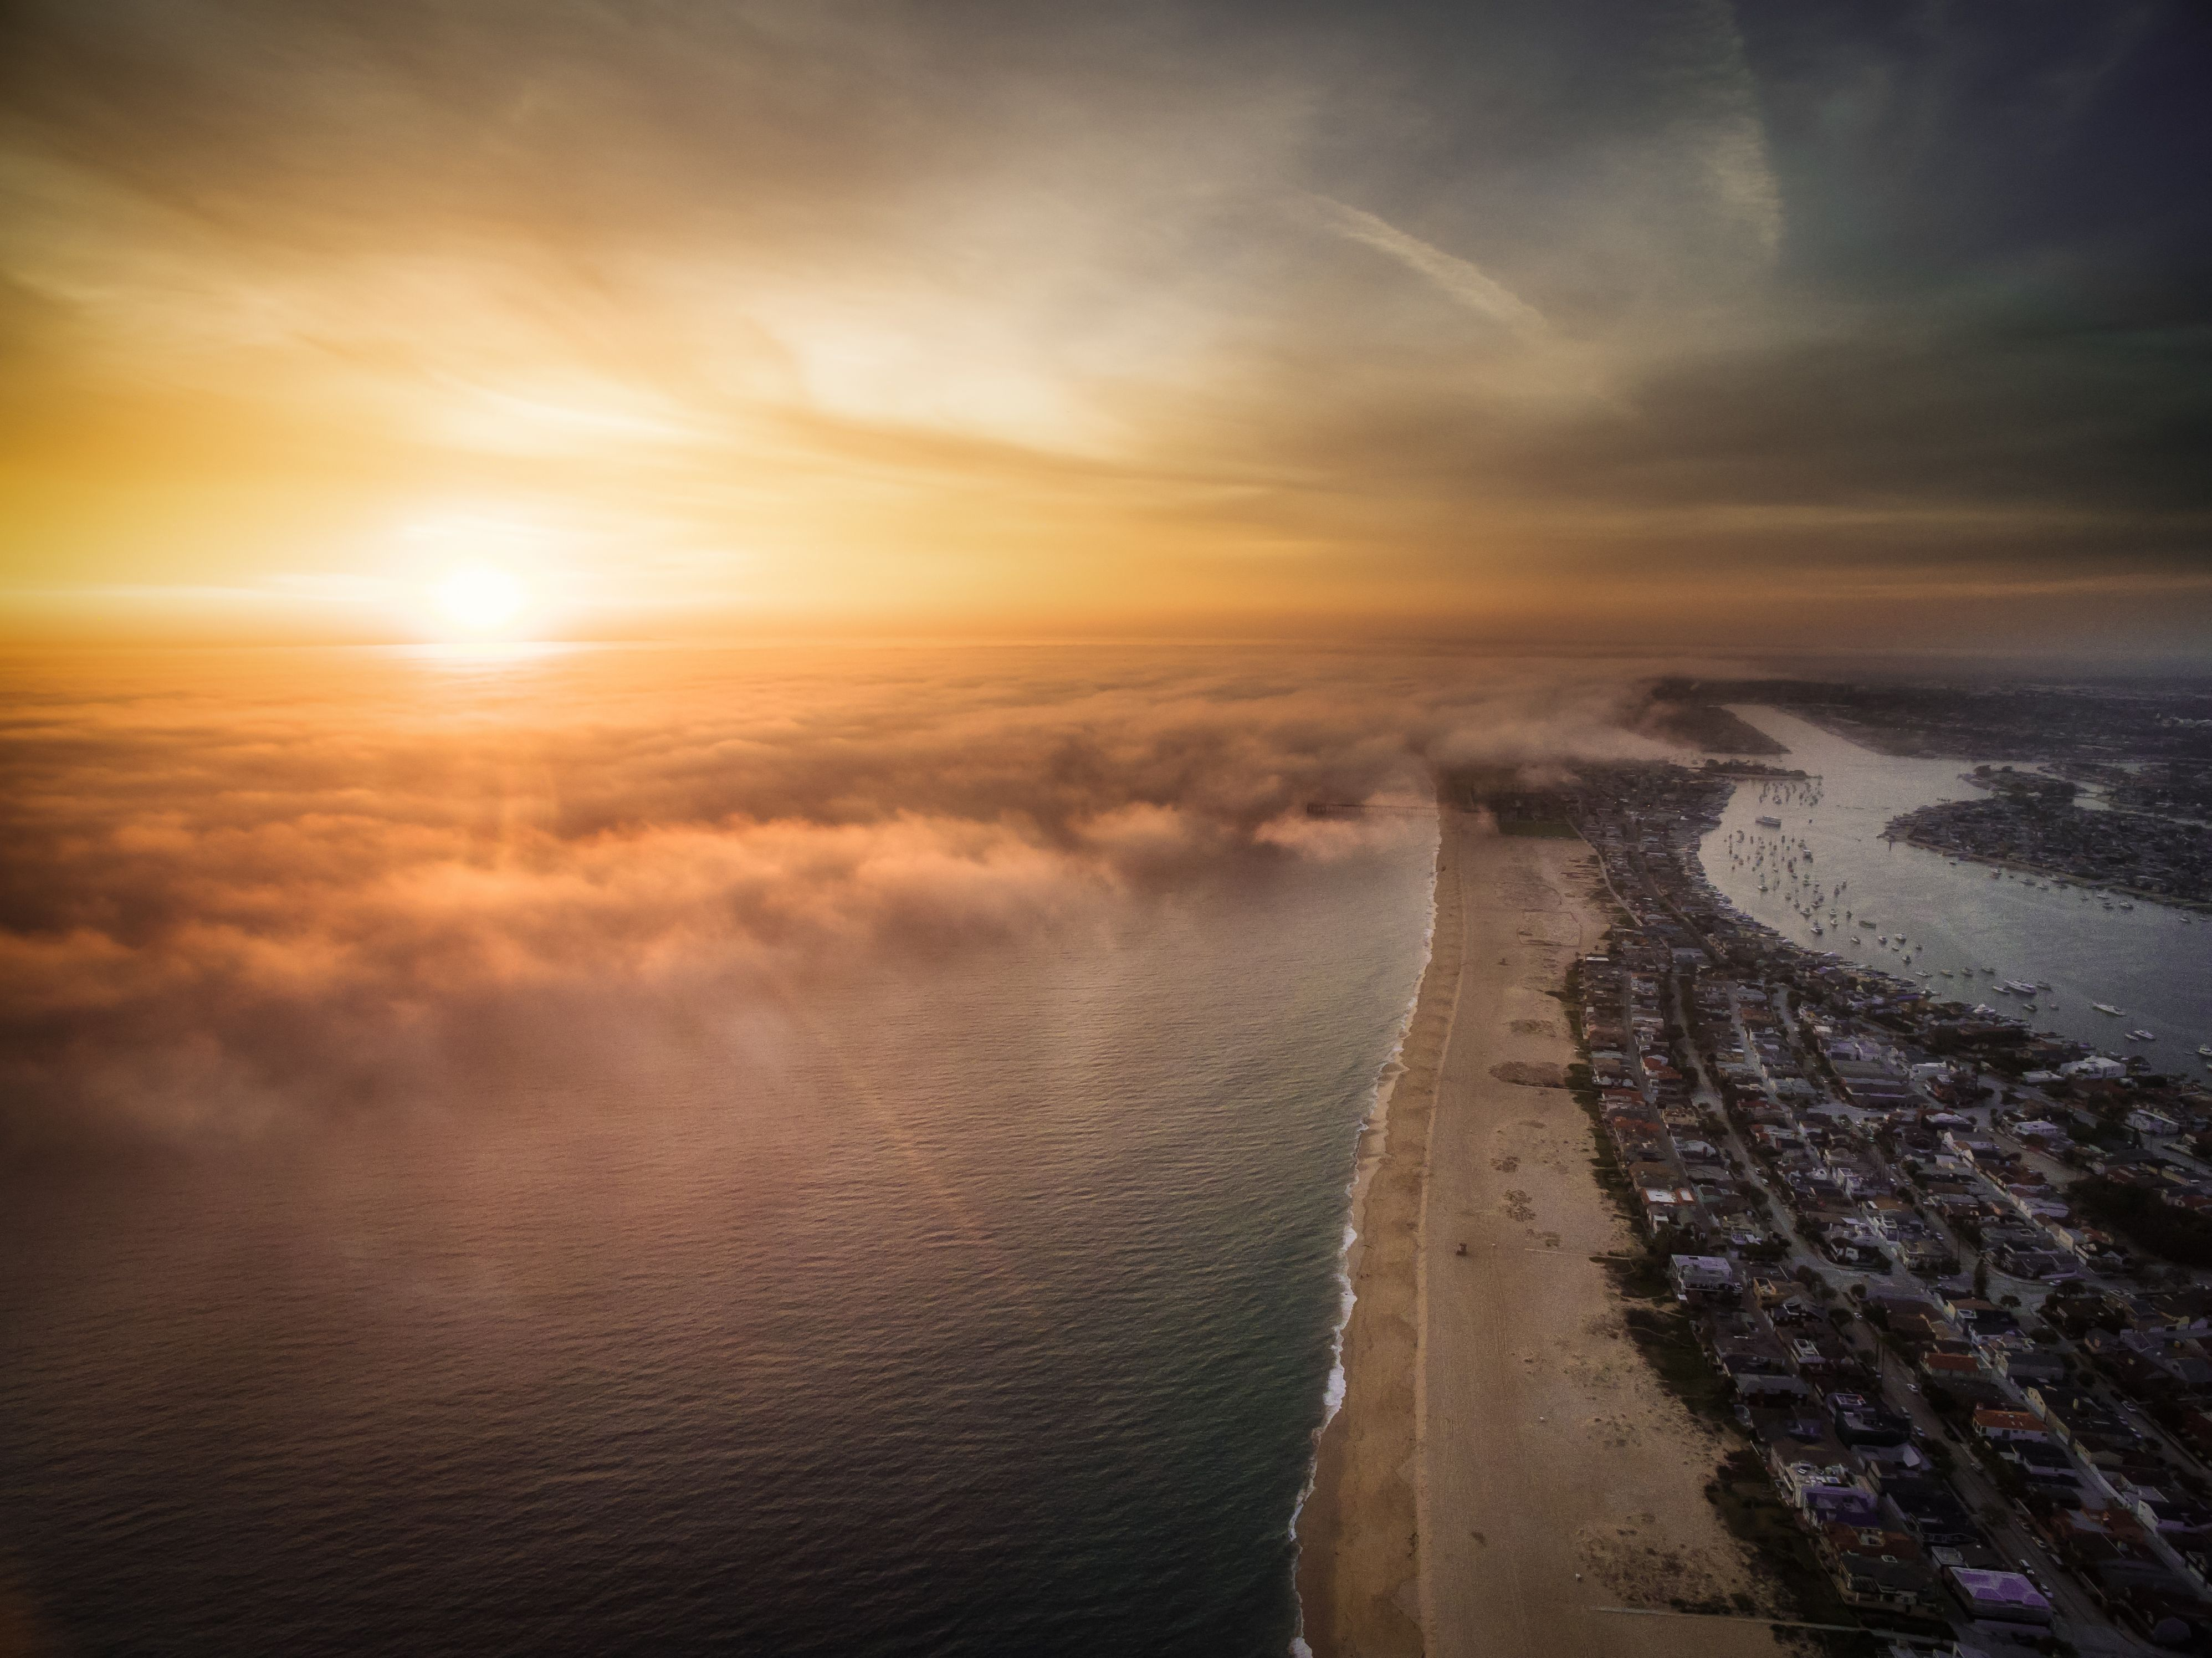 Flying above low clouds, a drone captures a beautiful sunset over Newport Beach, California. The Pacific Ocean controls Newport Beach's mild climate, with cooler summers and warmer winters.